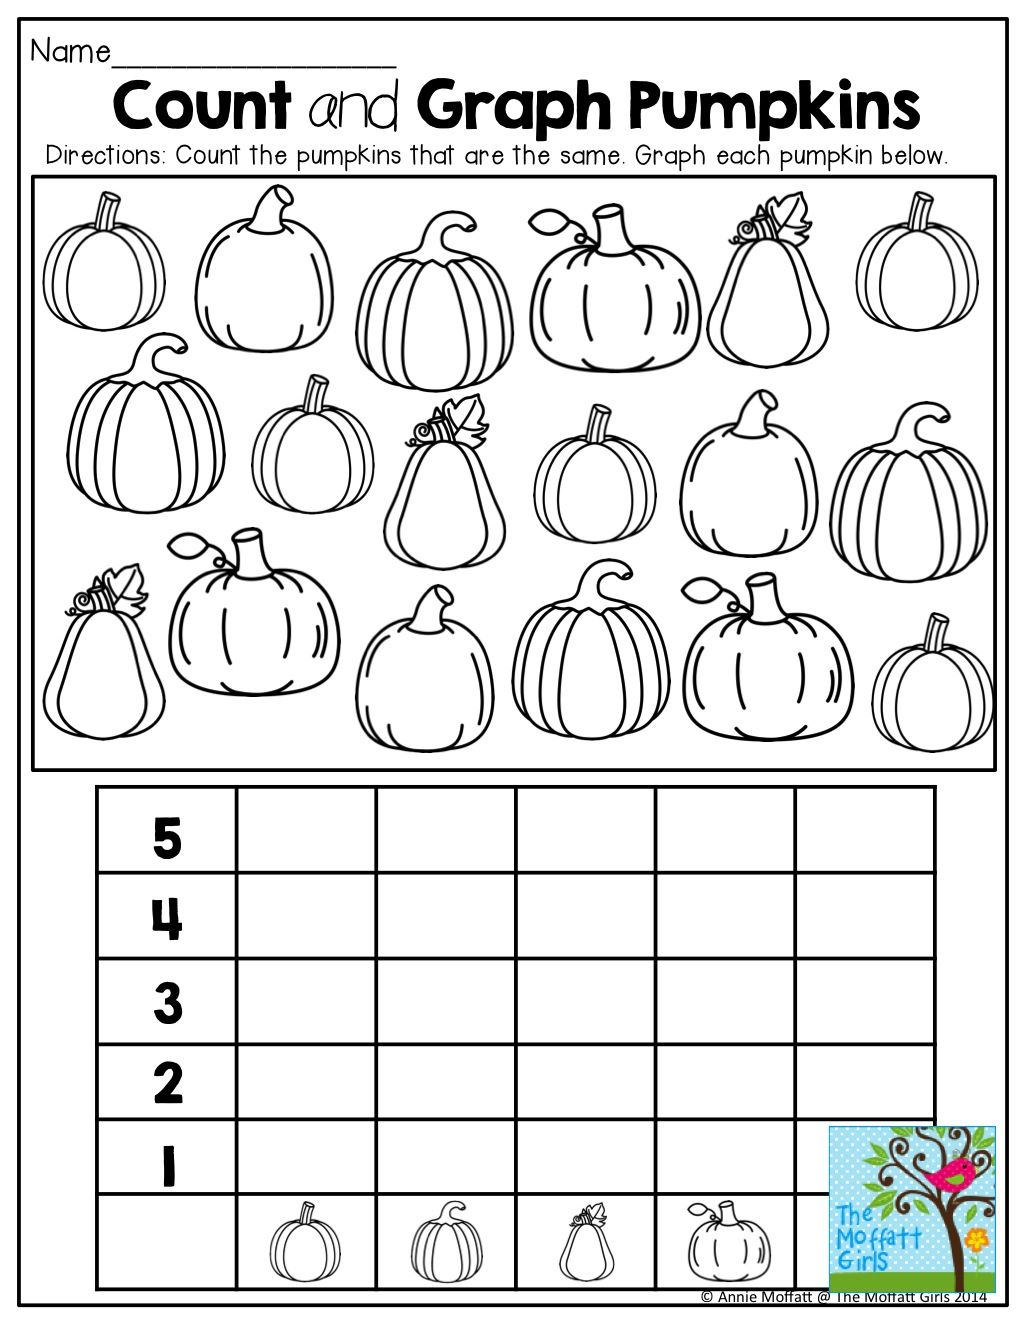 Count And Graph The Pumpkin